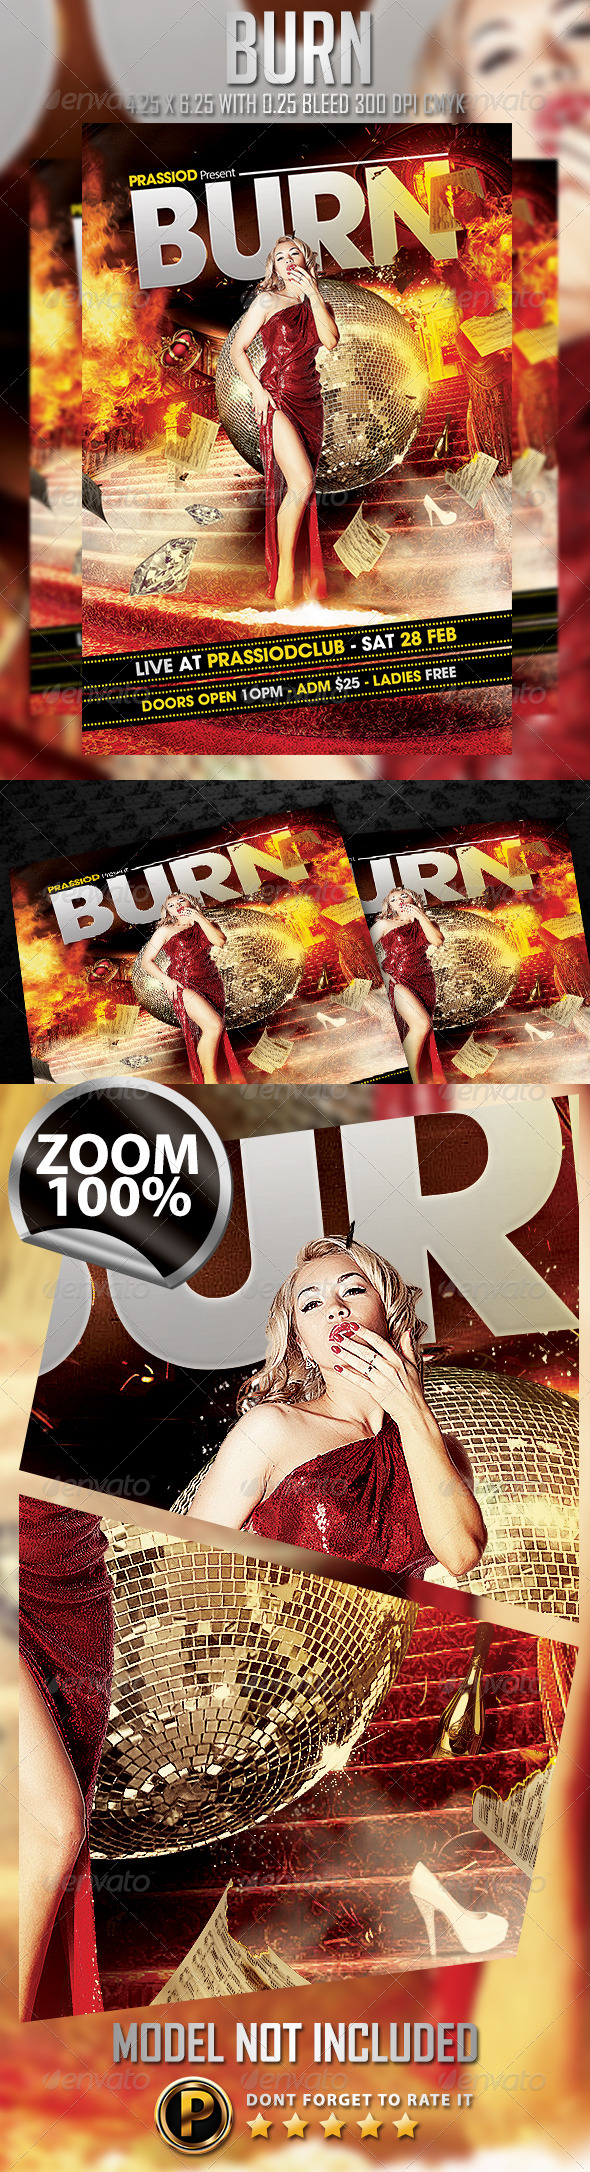 Burn Flyer Template - Clubs & Parties Events